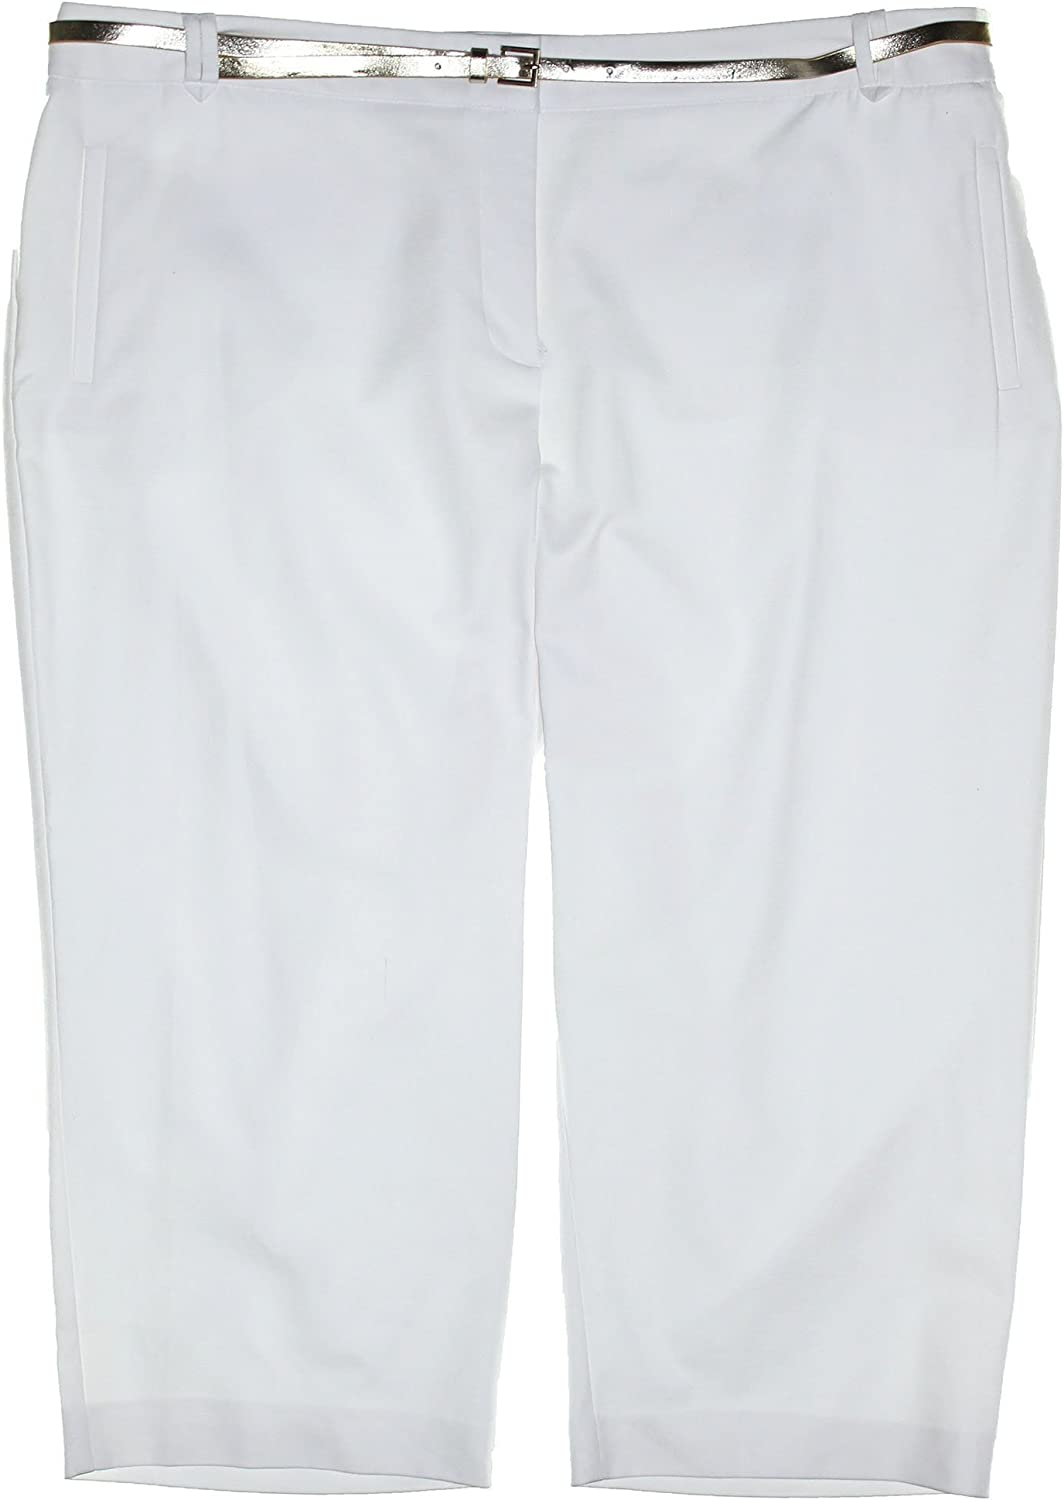 Charter Club Womens Plus Size Tummy Slimming Belted Capri Pants 24w White